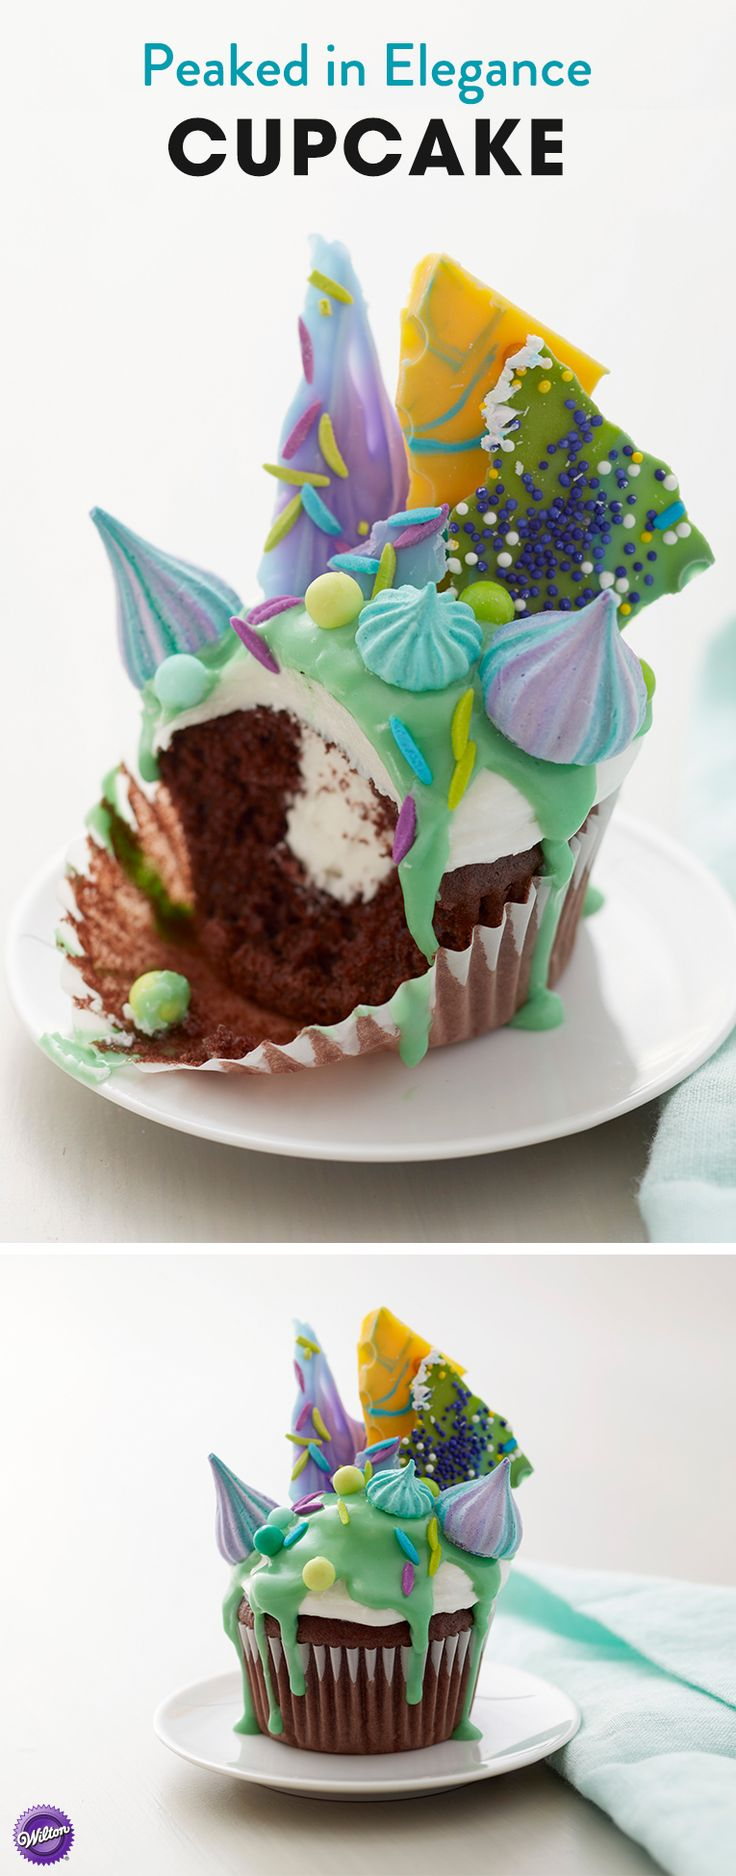 1000+ ideas about Cupcake Art on Pinterest | Cupcake, Pink ...